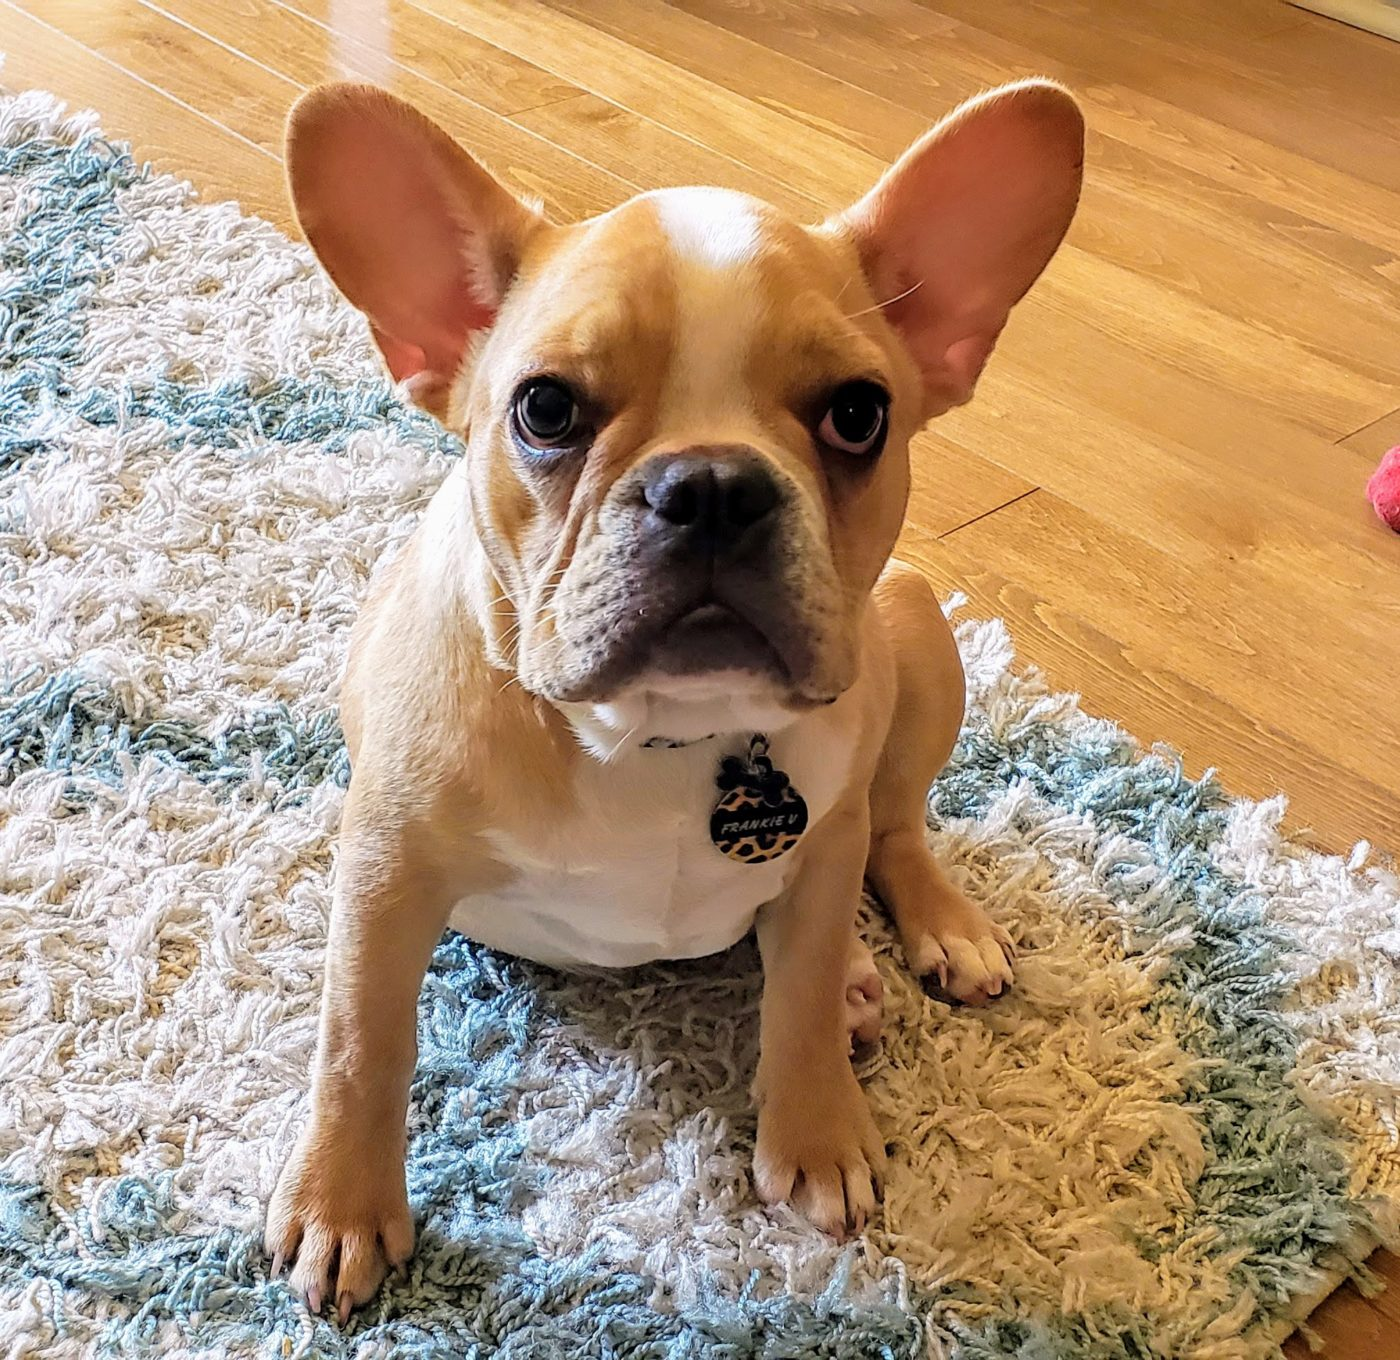 #housebreaking, #frenchbulldogpuppytraining, #prodigyppuppy